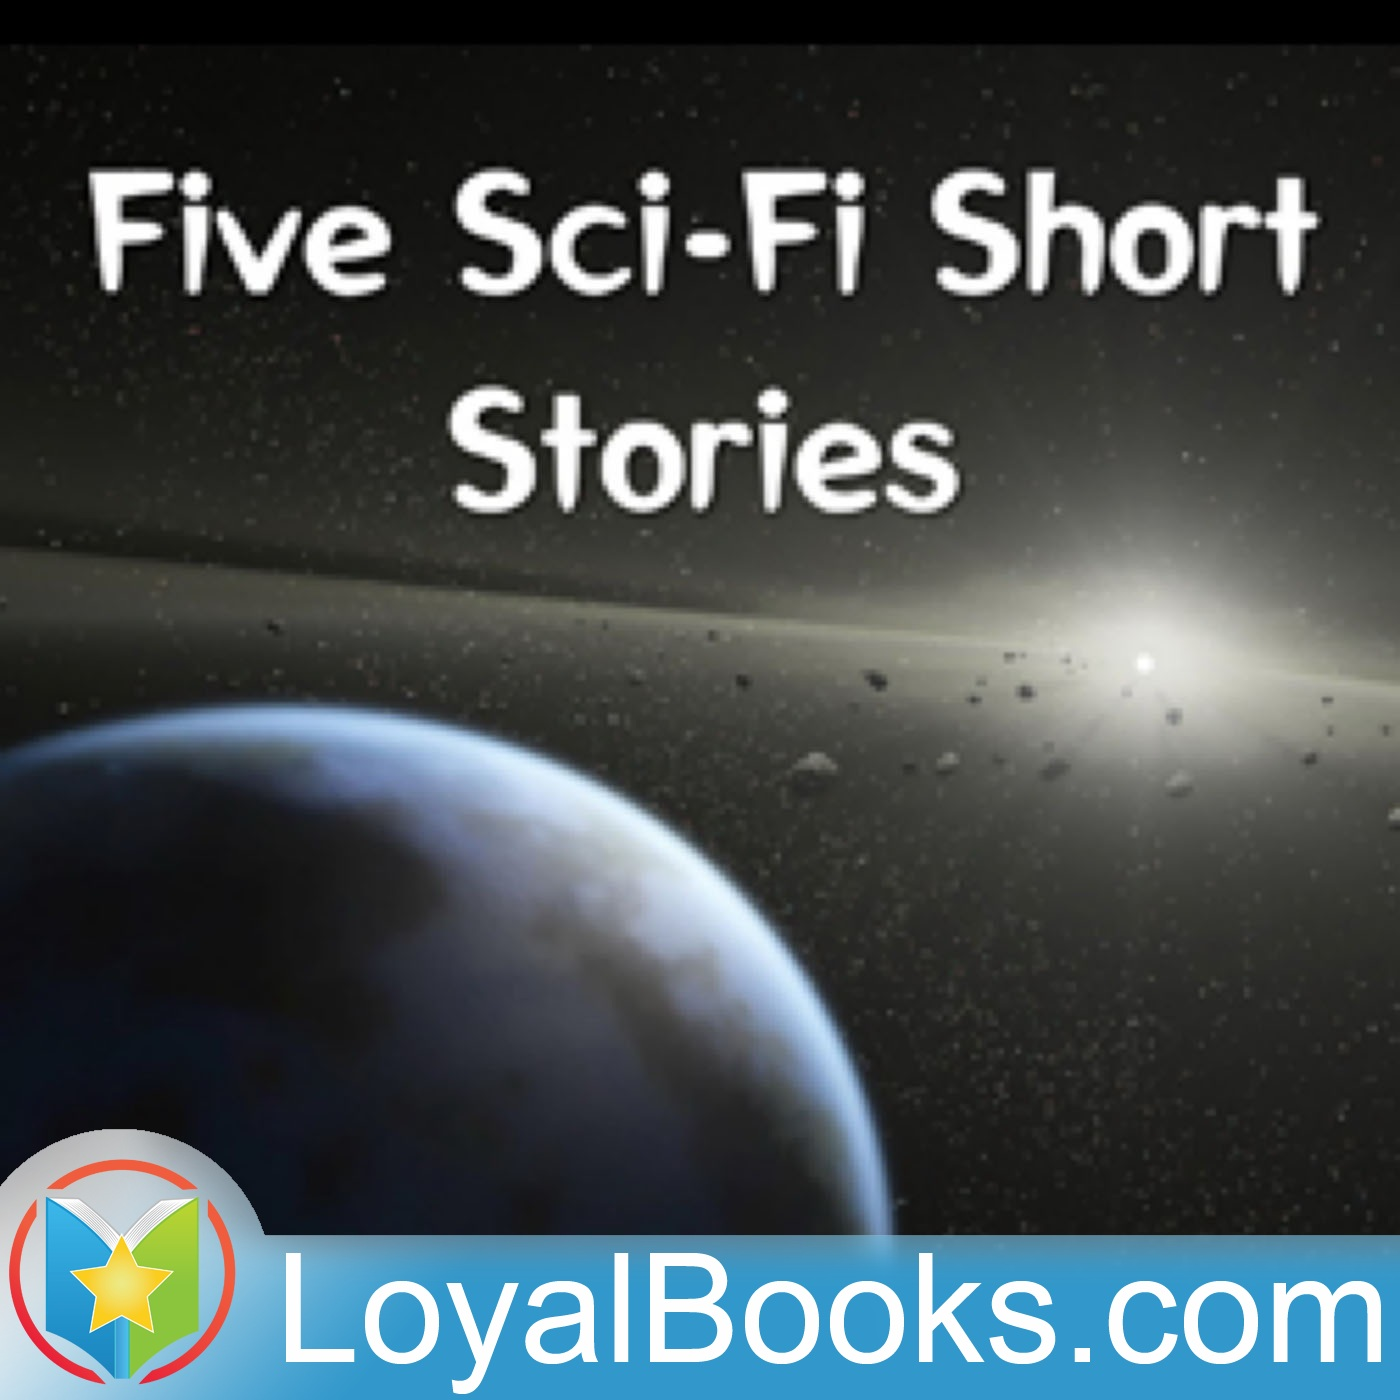 <![CDATA[Five Sci-Fi Short Stories by H. Beam Piper by H. Beam Piper]]>